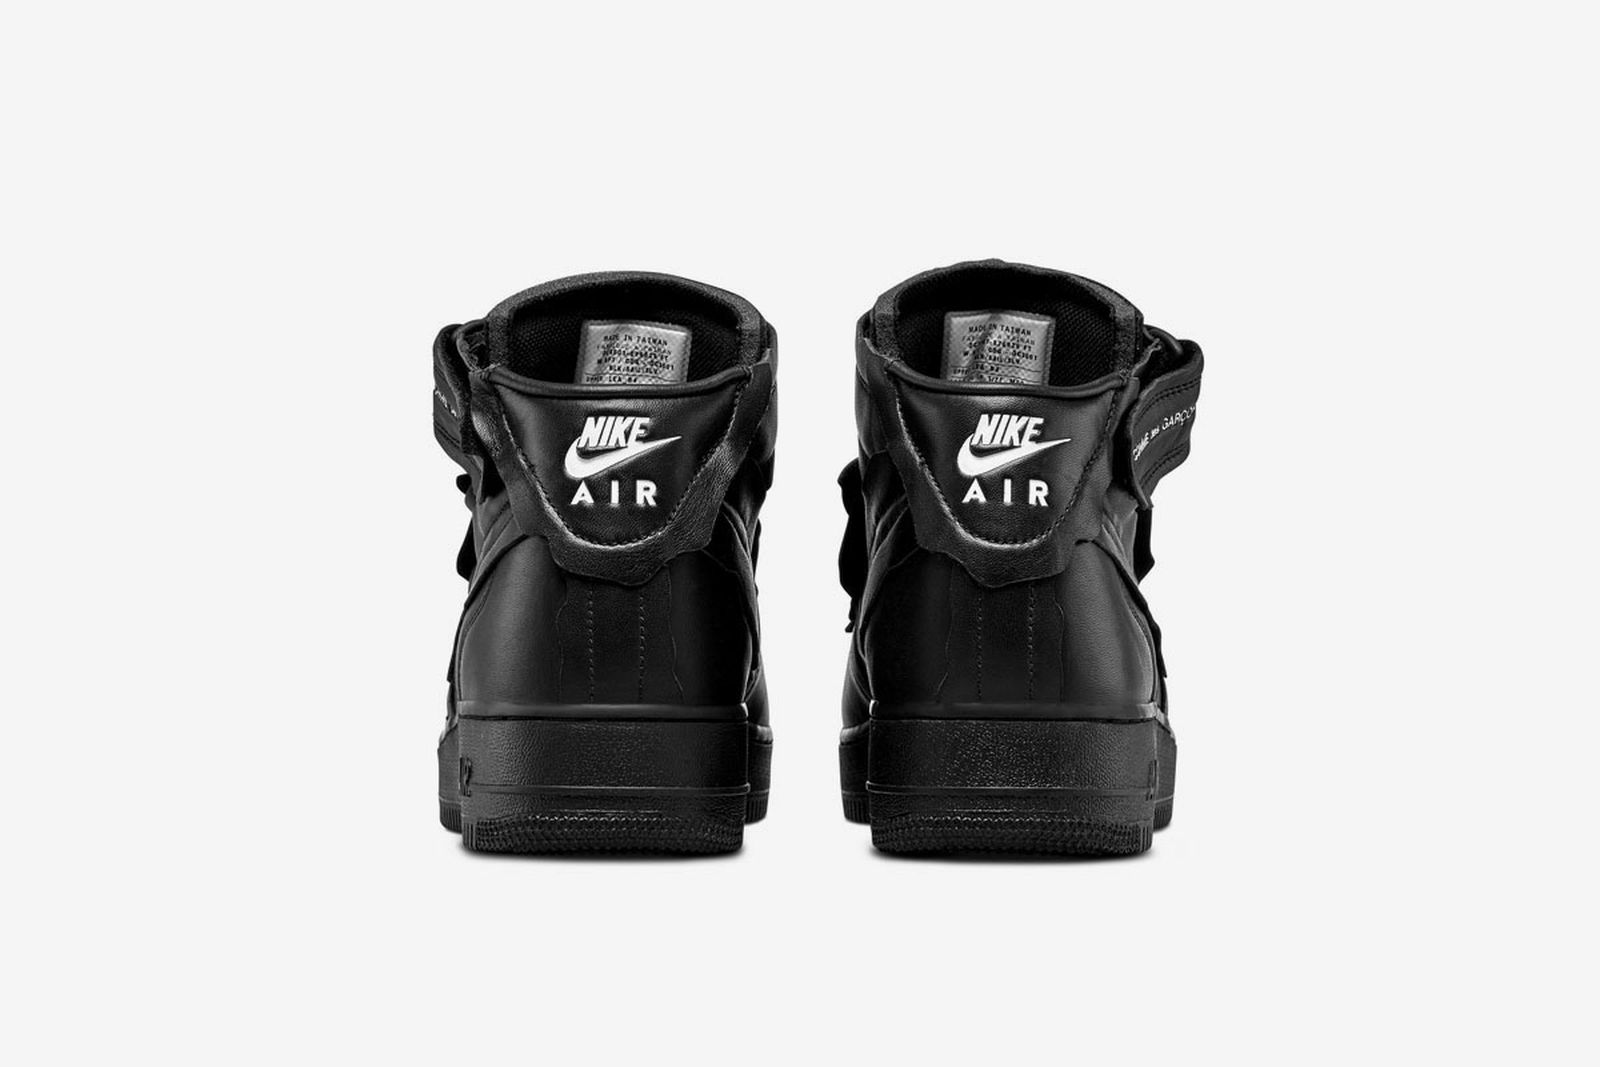 comme-des-garcons-nike-air-force-1-mid-release-date-price-014